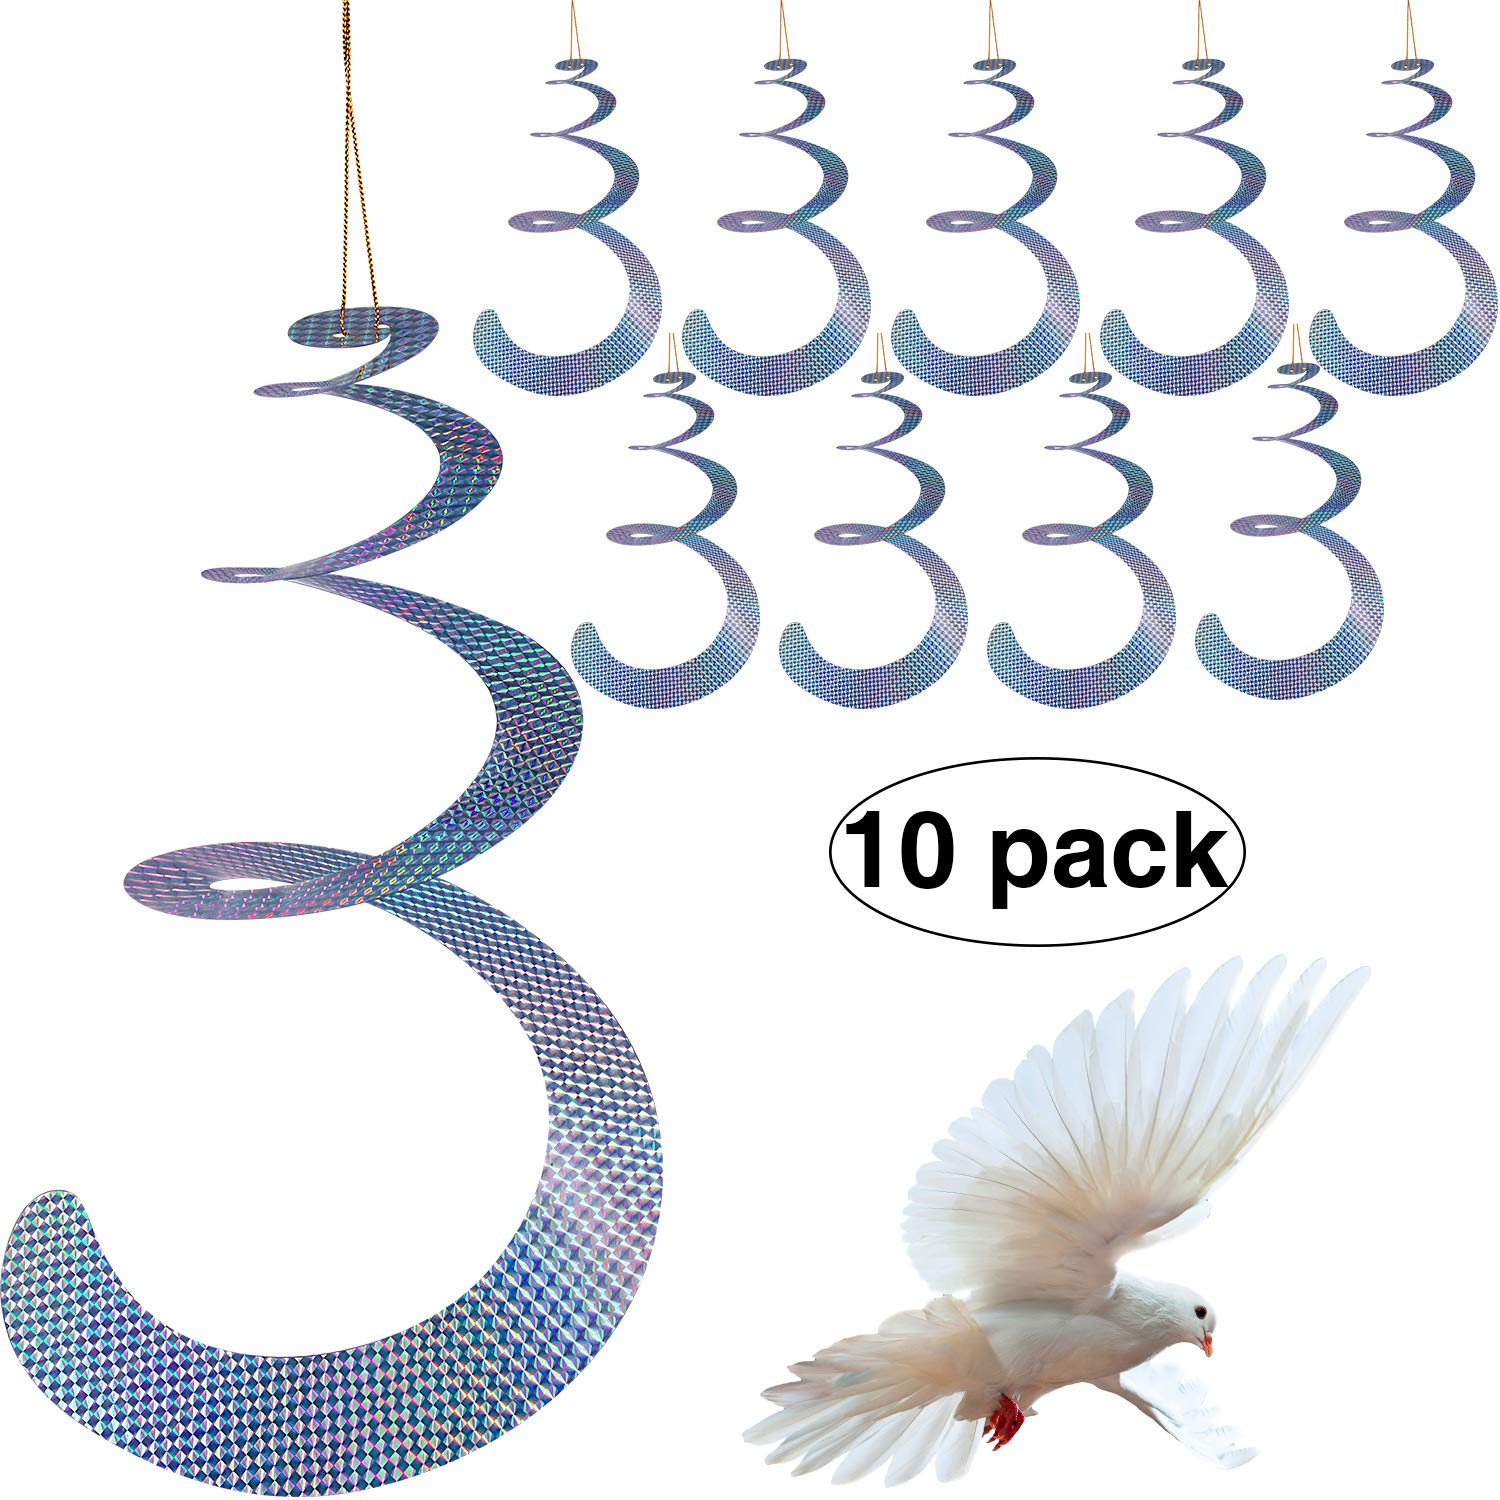 Maitys 10 Pack Bird Repellent Control Scare Device, Efficient Spiral Bird Deterrent Device Reflect Light to Scare Birds Away by Maitys